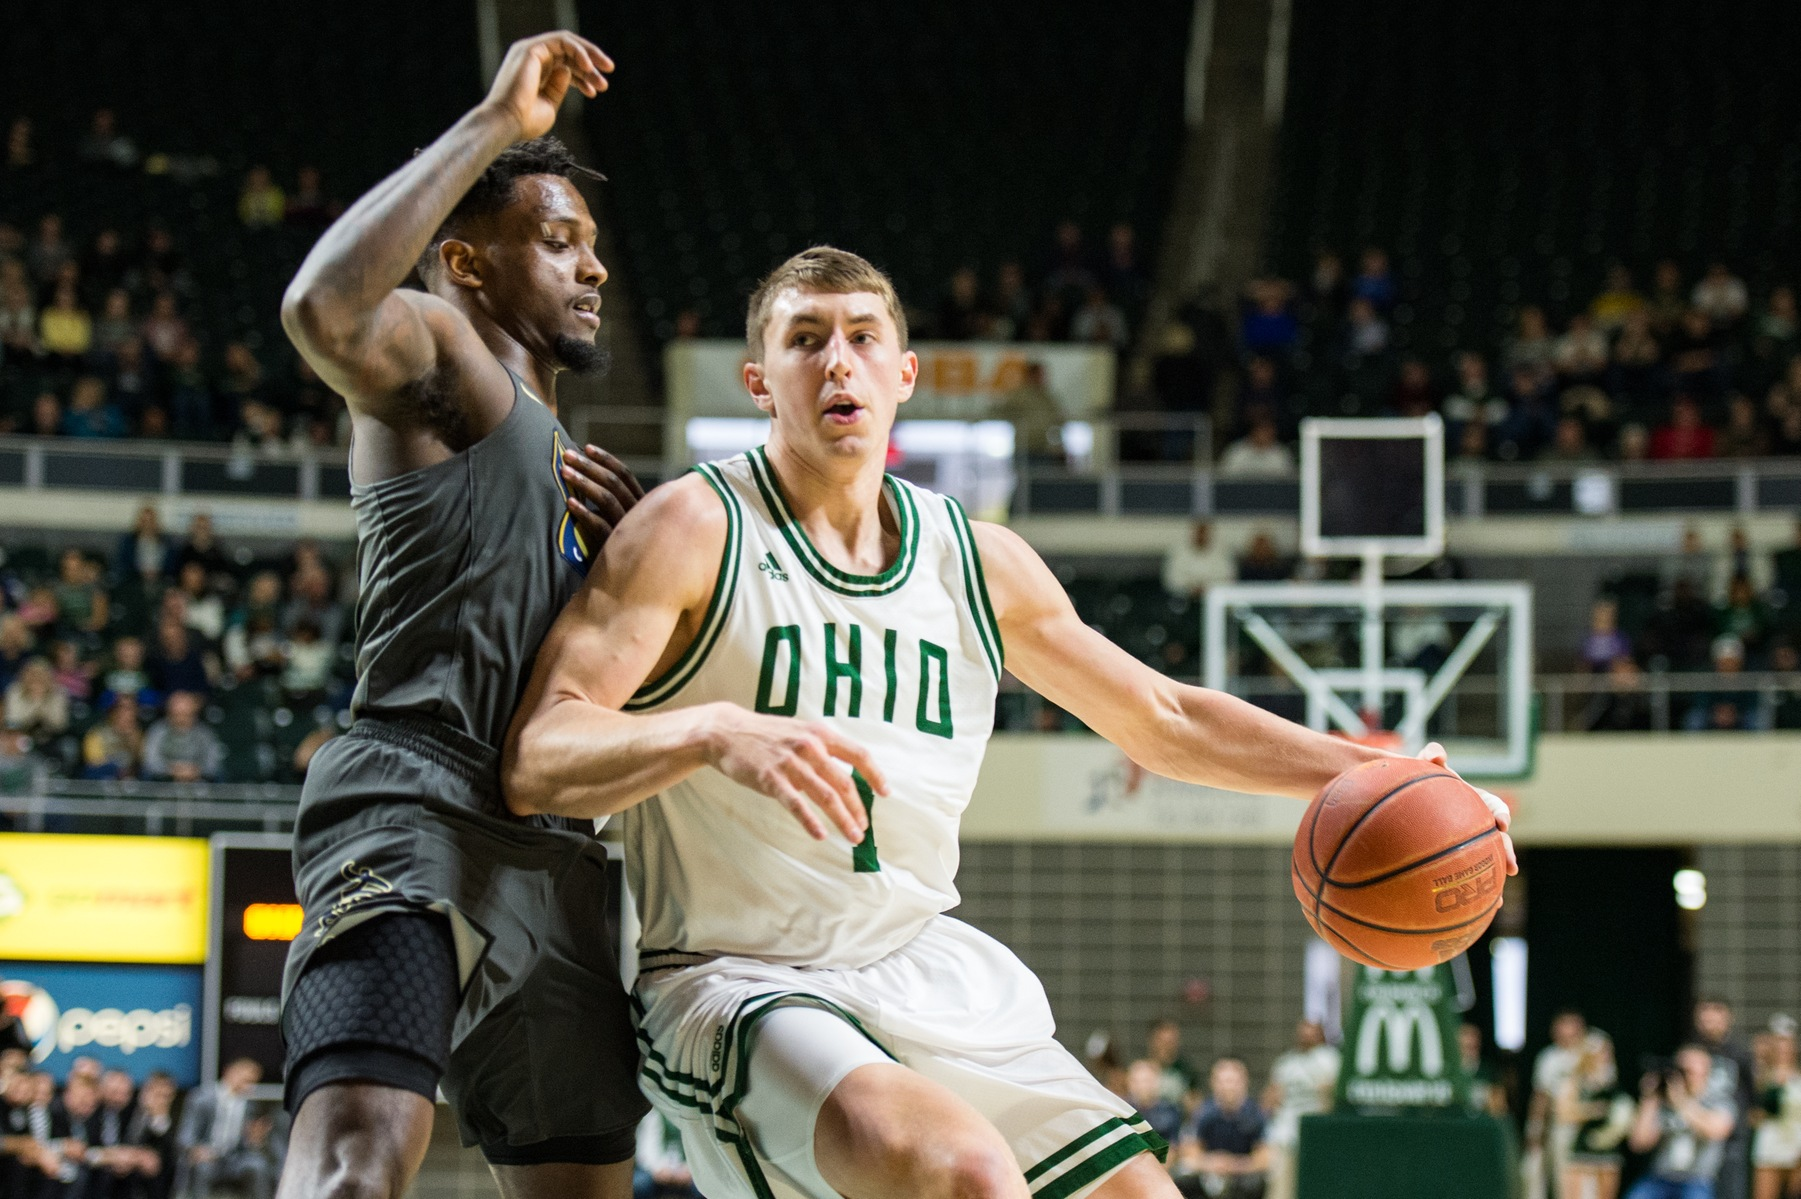 Ohio Men's Basketball Falls to Akron